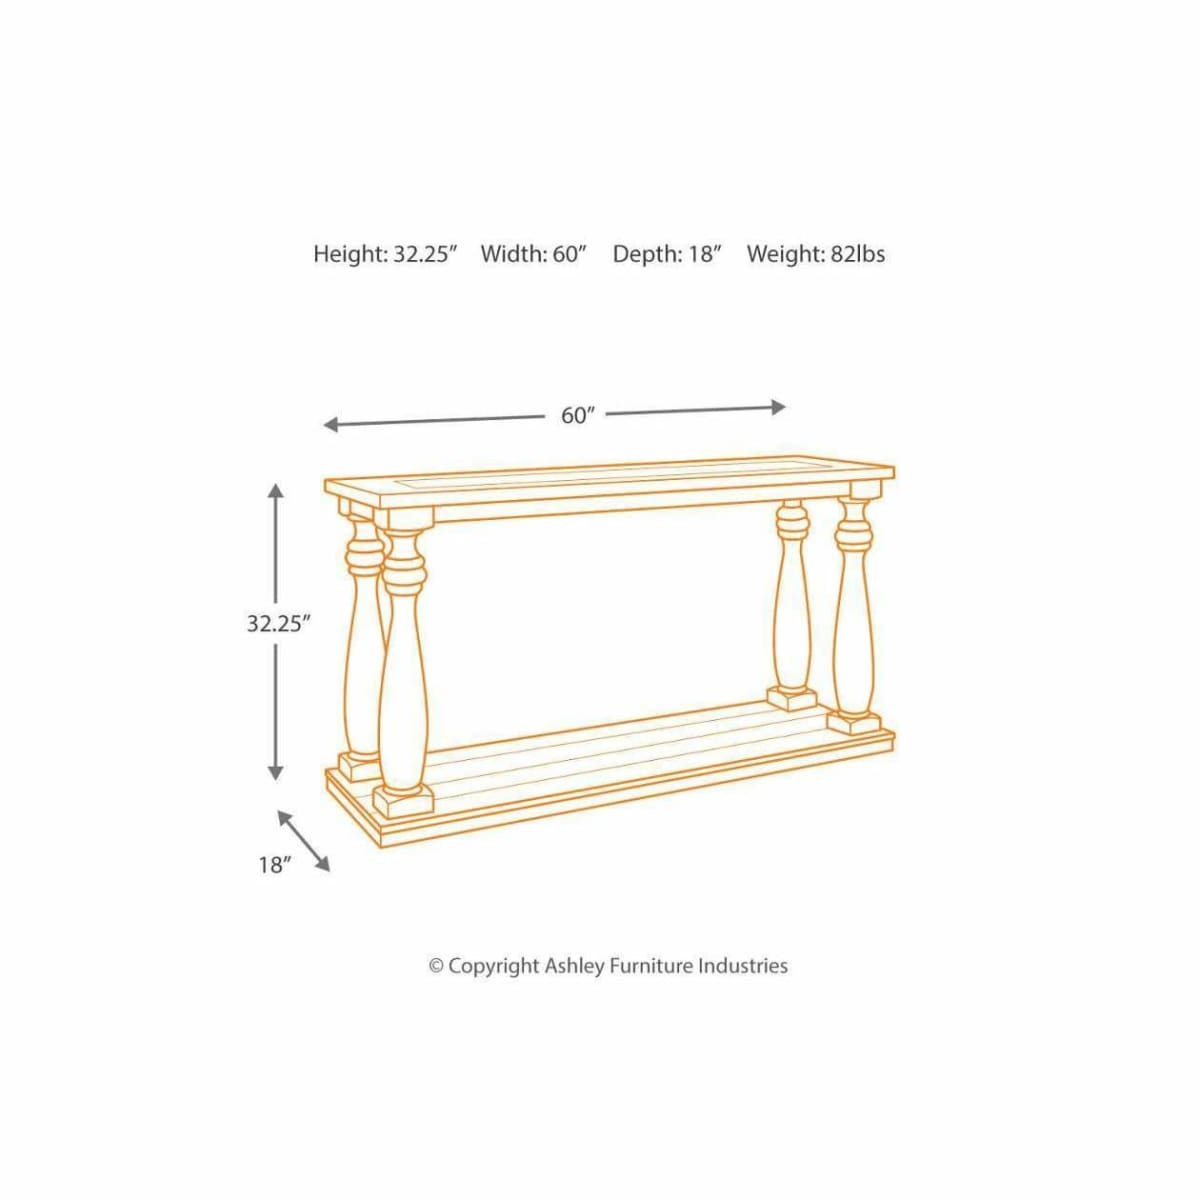 Mallacar Sofa/Console Table - CONSOLE TABLE